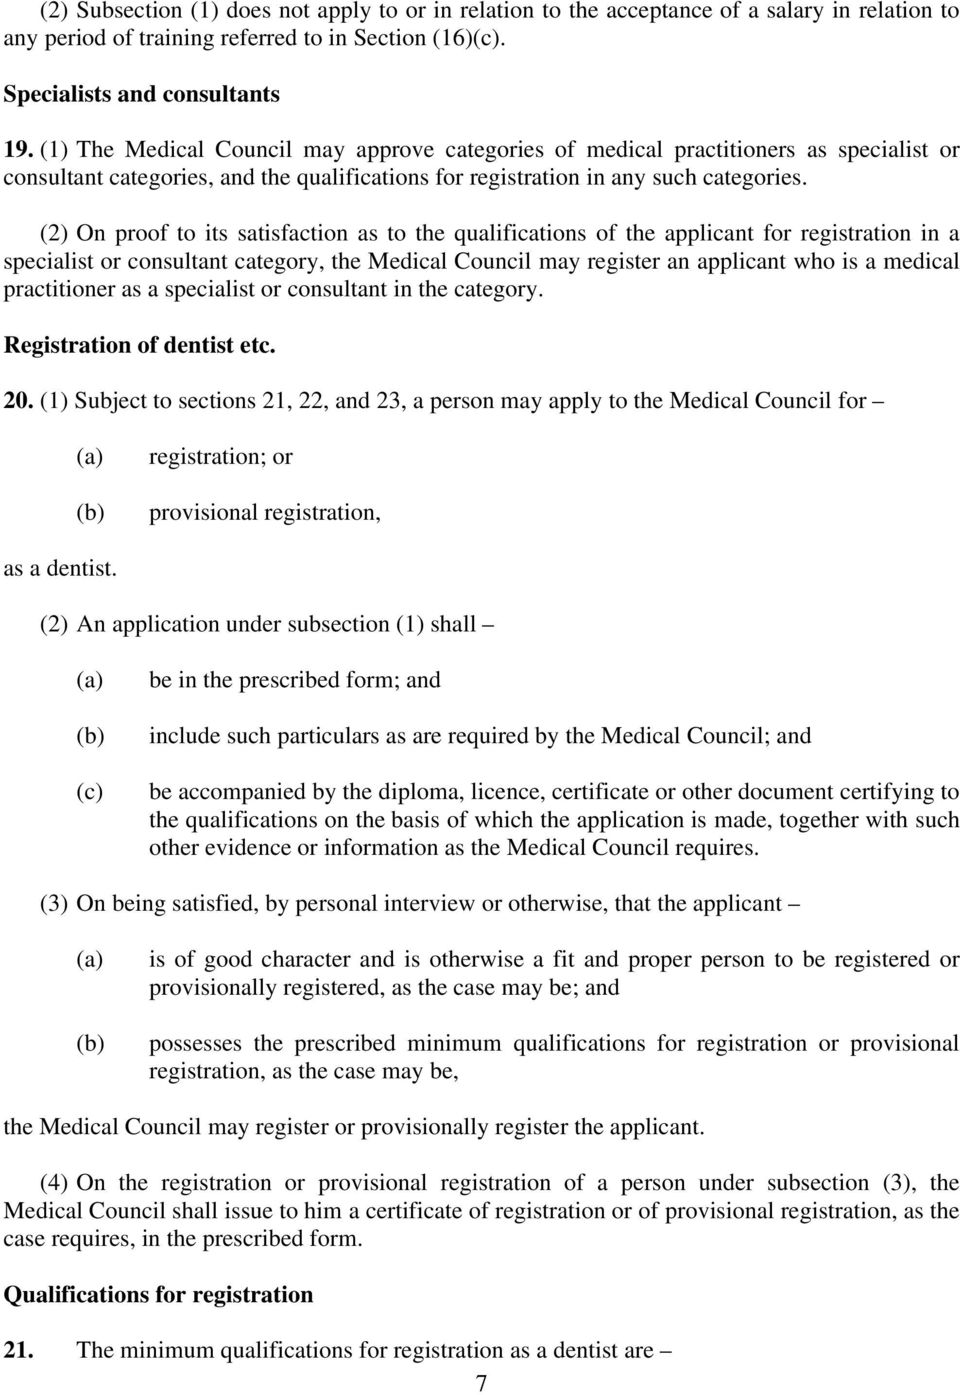 (2) On proof to its satisfaction as to the qualifications of the applicant for registration in a specialist or consultant category, the Medical Council may register an applicant who is a medical